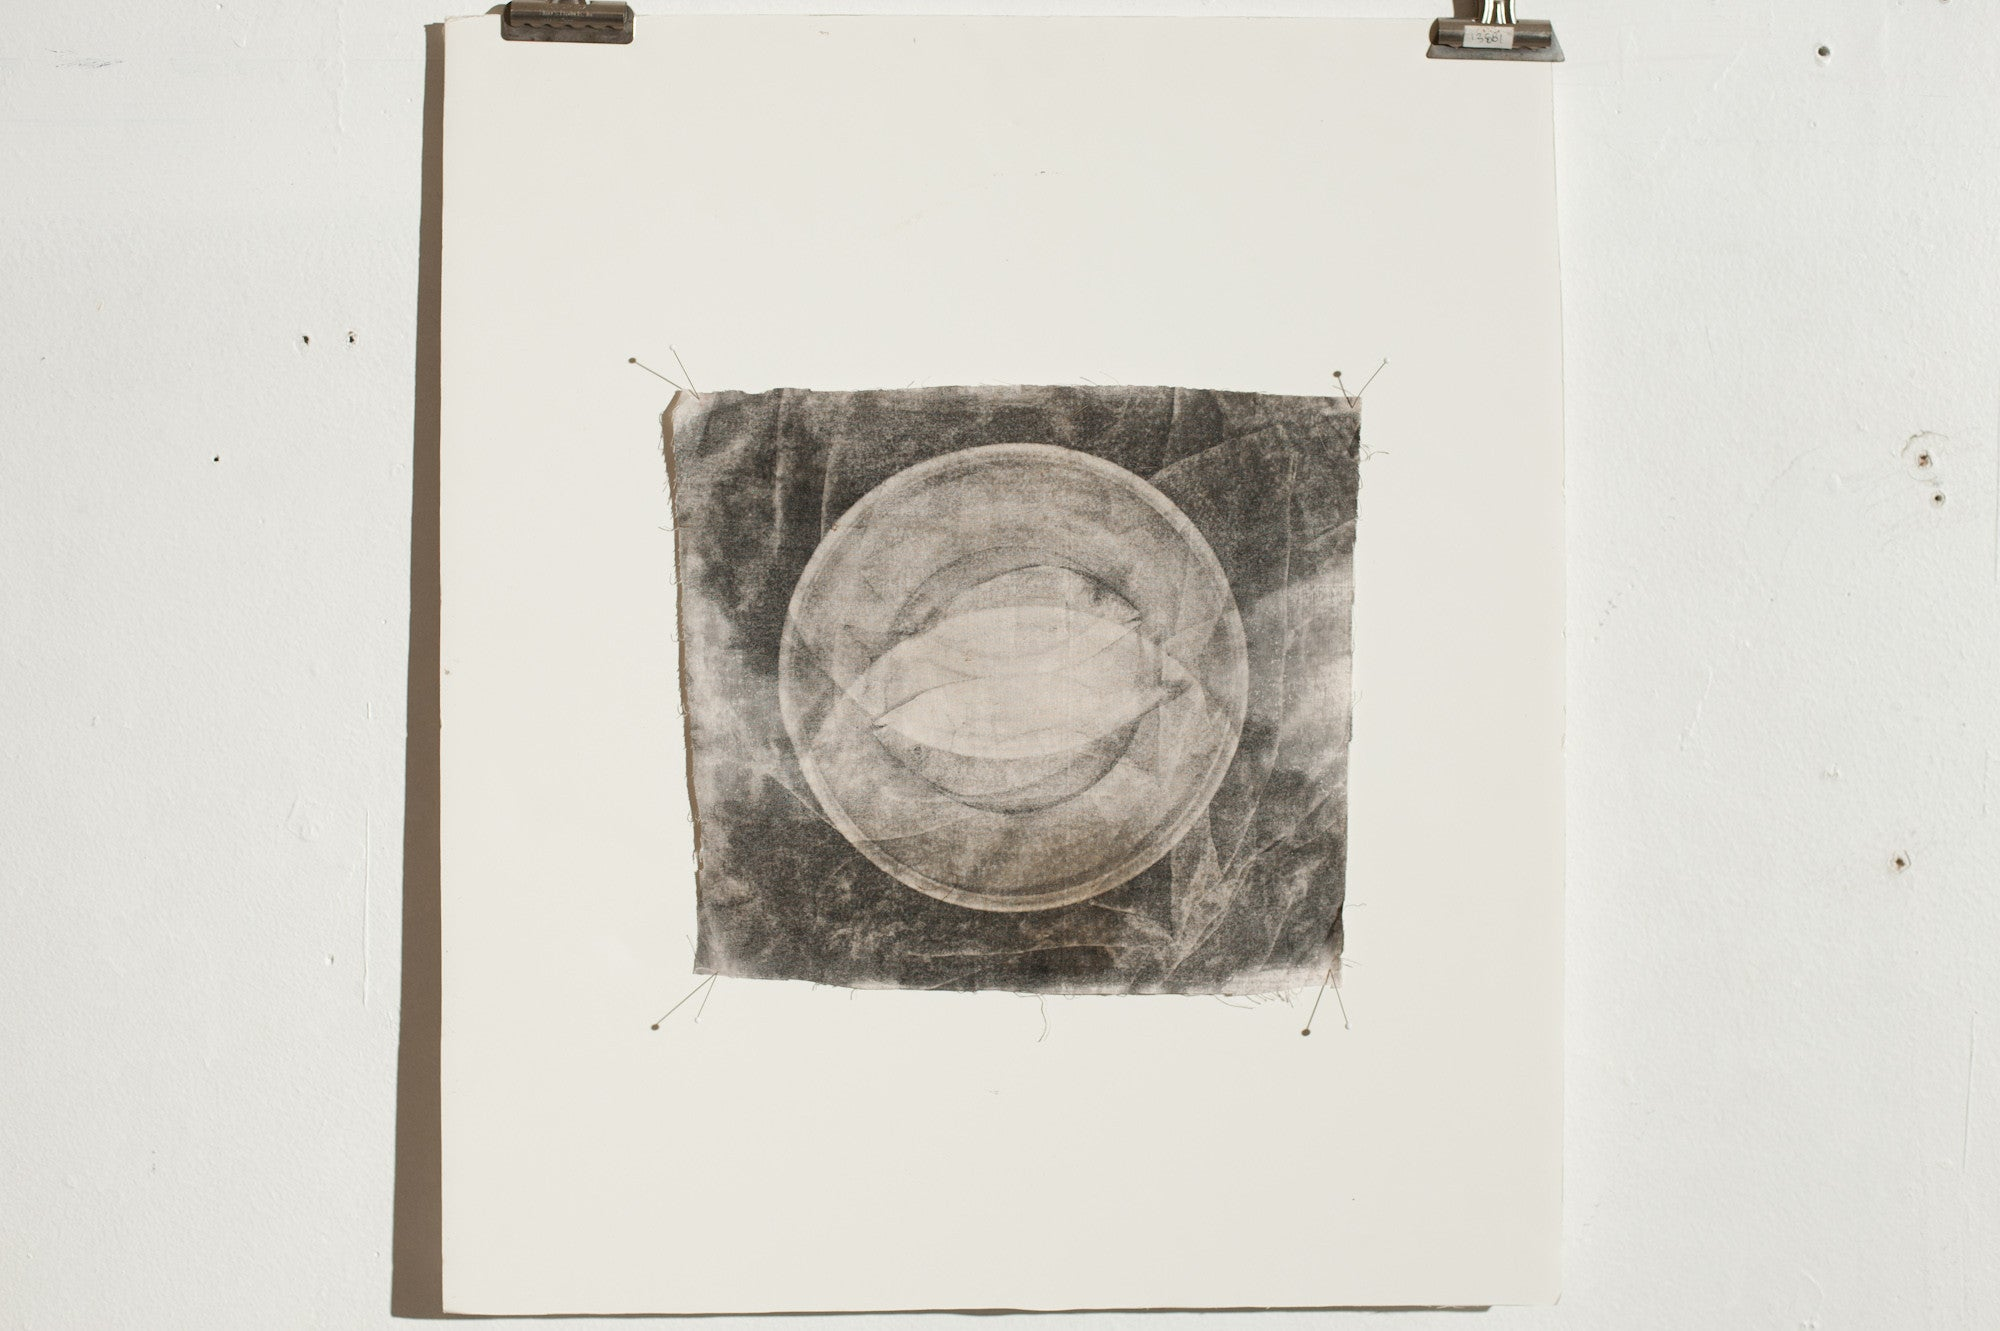 Ben Pearson - Fish On A Plate - Analog Printed on Linen